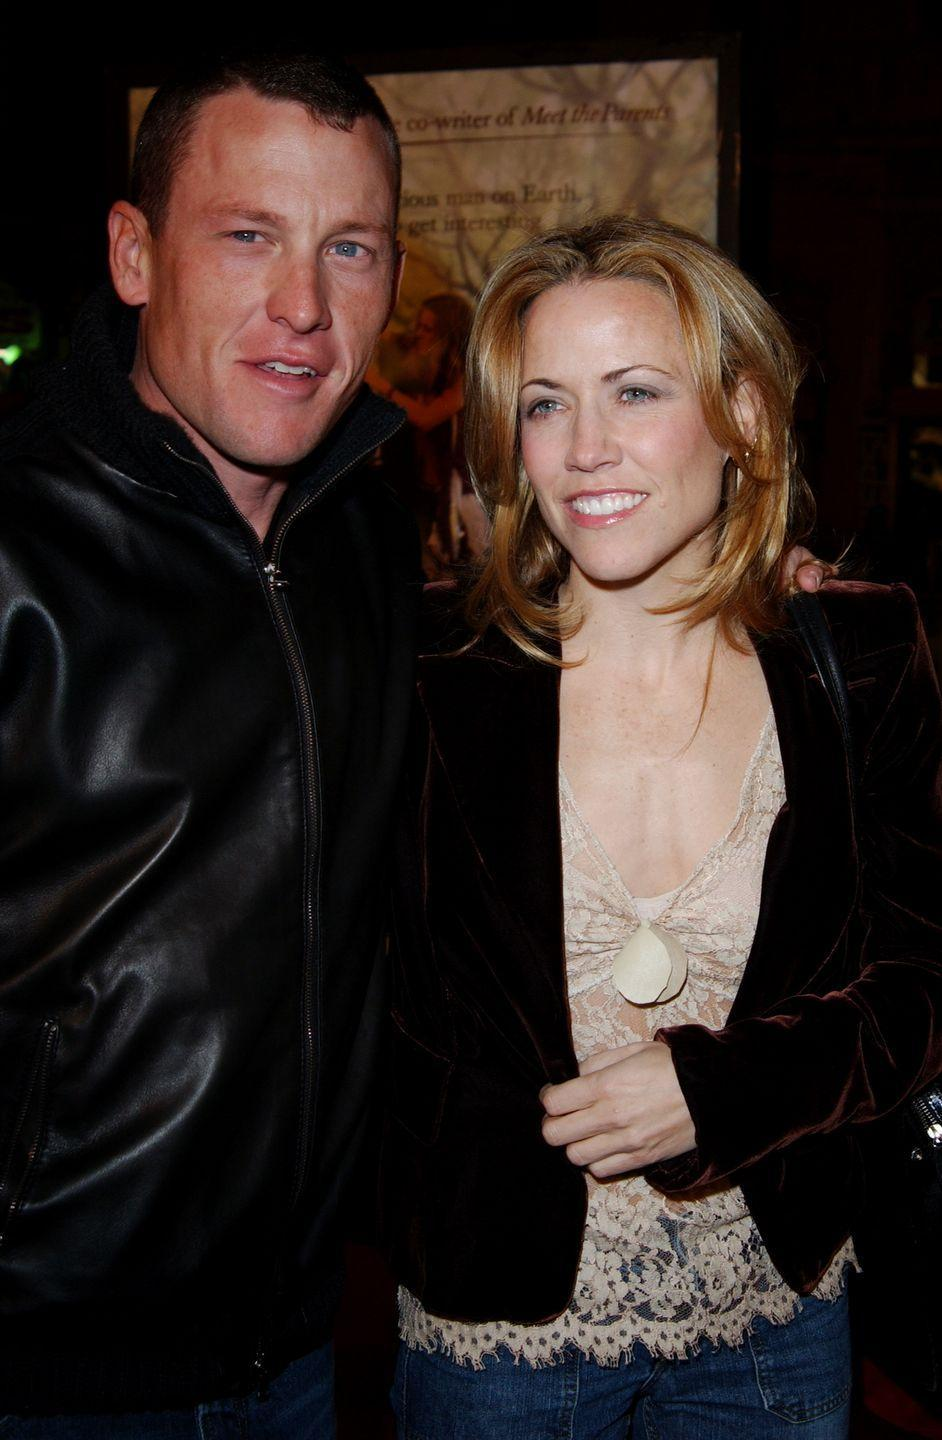 """<p>The two started dating in 2003 and called it quits in February 2006 after getting engaged five months earlier. """"It was a good ride,"""" the <a href=""""http://www.etonline.com/news/212276_lance_armstrong_talks_relationship_with_sheryl_crow_it_s_tough_to_pull_off_being_a_power_couple/"""" rel=""""nofollow noopener"""" target=""""_blank"""" data-ylk=""""slk:cyclist told Howard Stern"""" class=""""link rapid-noclick-resp"""">cyclist told Howard Stern</a>. """"She's a great lady. Obviously it didn't work out, but I think and I hope she's happy. I'm happy."""" </p>"""